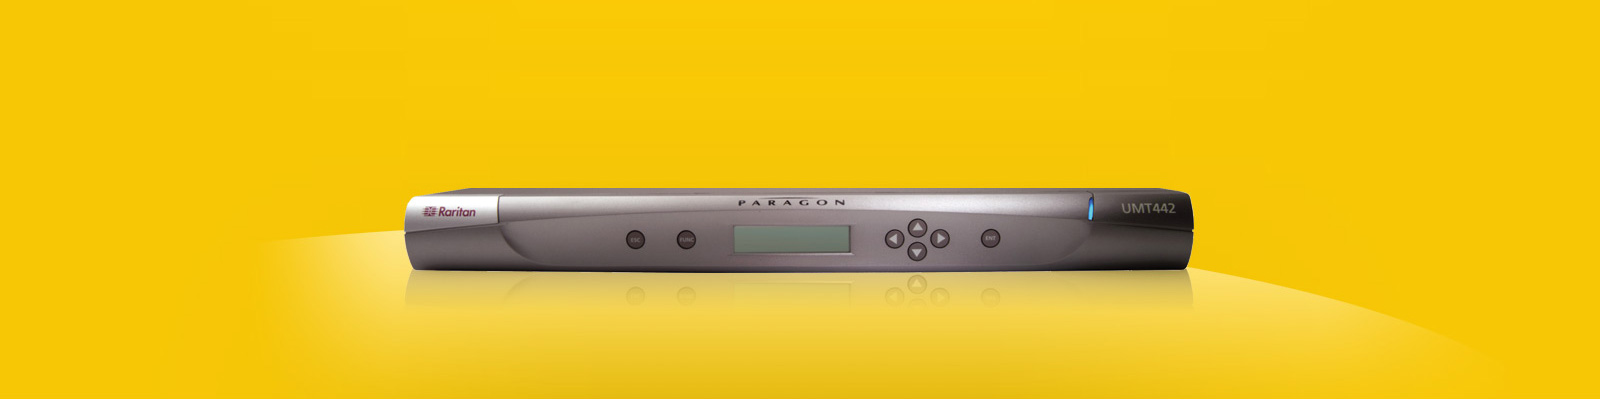 Raritan Paragon 8 User, 32 Port High Density CATx KVM Switch - Multi-Platform: PS/2, USB, Sun and SGI